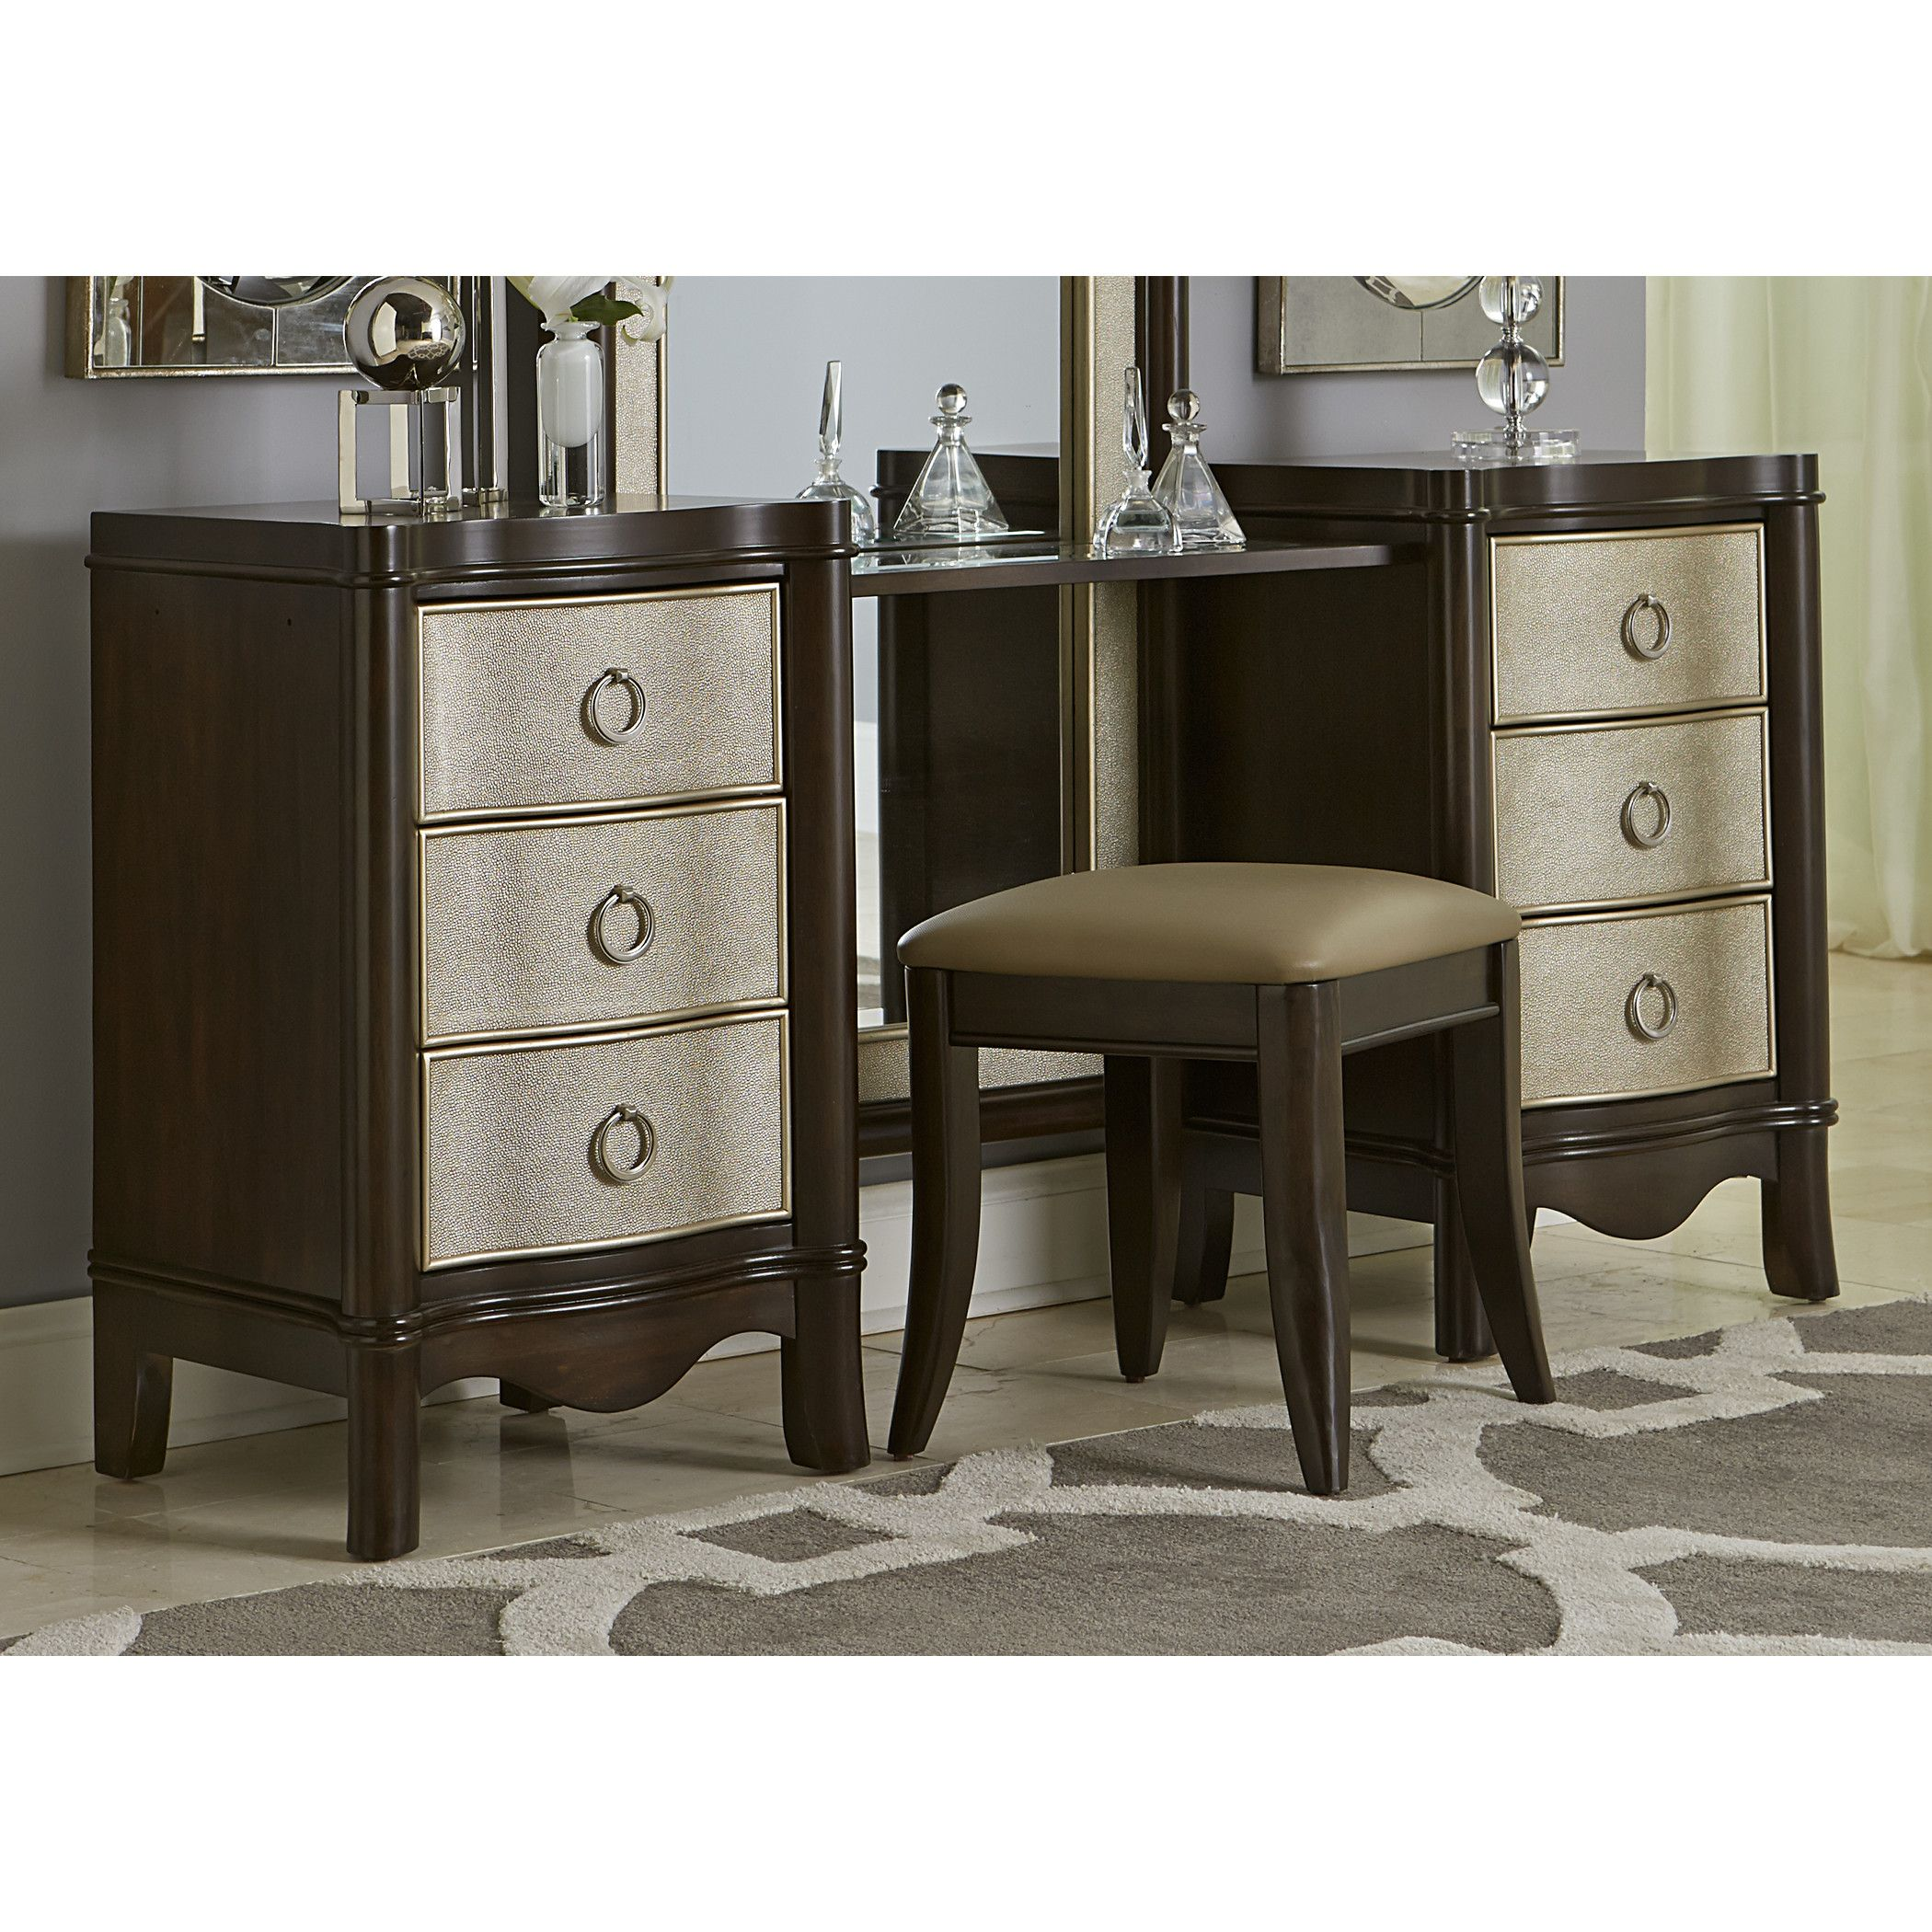 House Of Hampton Hoyt Vanity Drawer Unit